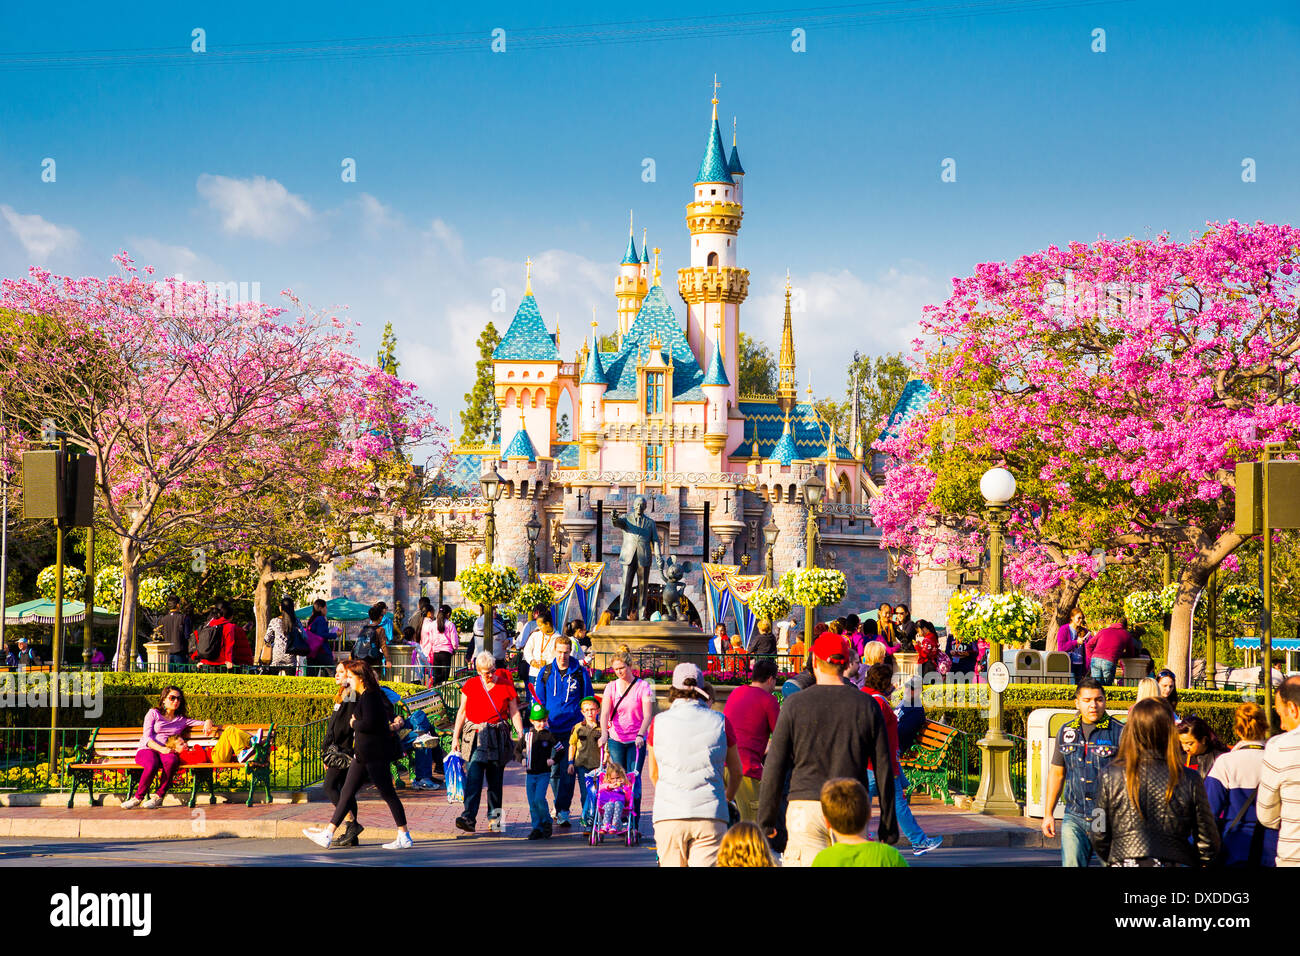 Disneyland Main Street crowded with guests and a tram car in the road leading towards the iconic pink castle. Stock Photo